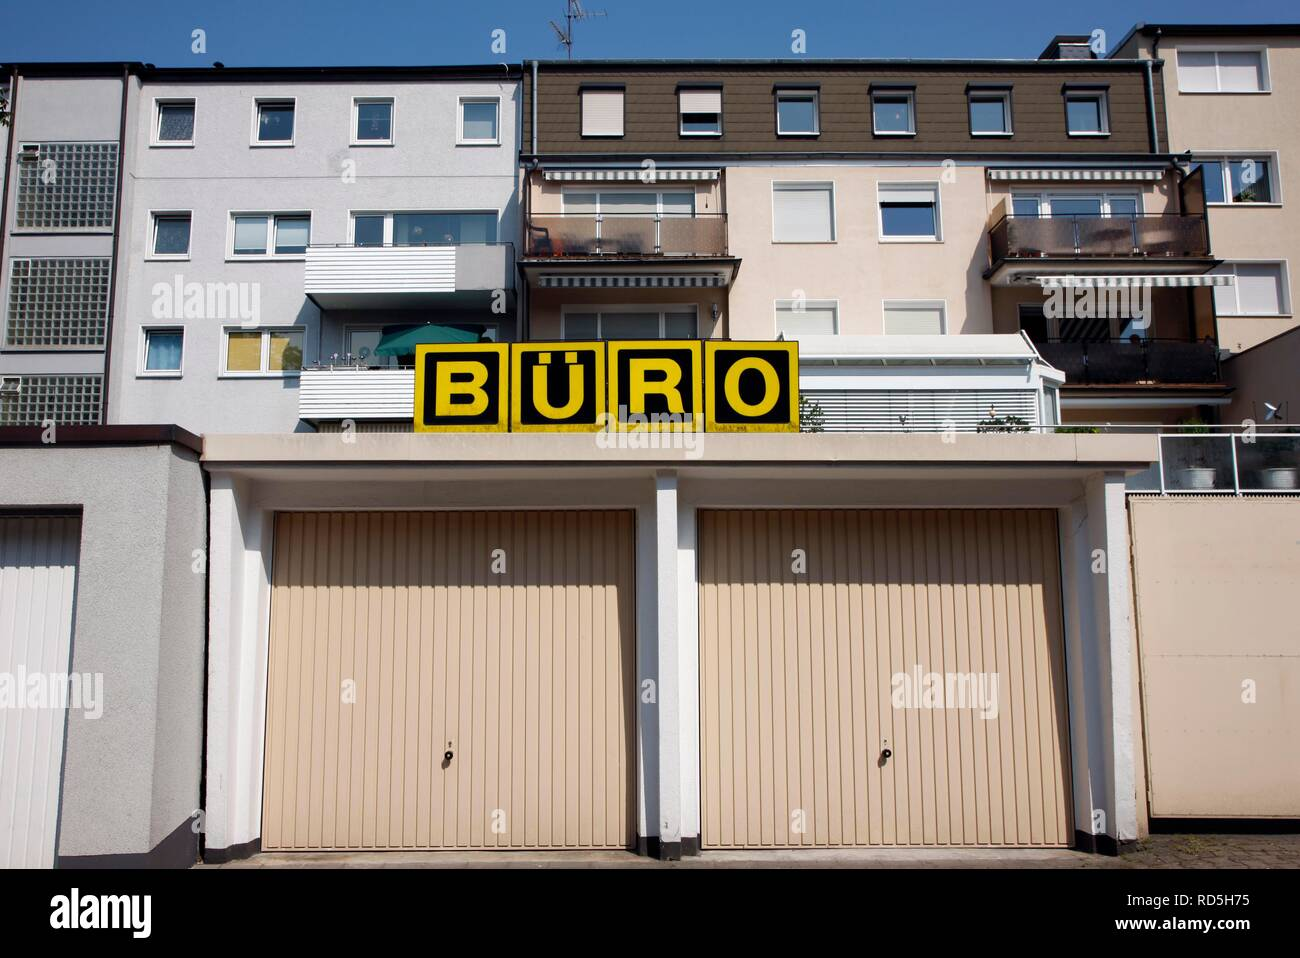 Garages for cars, above a sign saying 'Buero', German for office, Gelsenkirchen, North Rhine-Westphalia - Stock Image